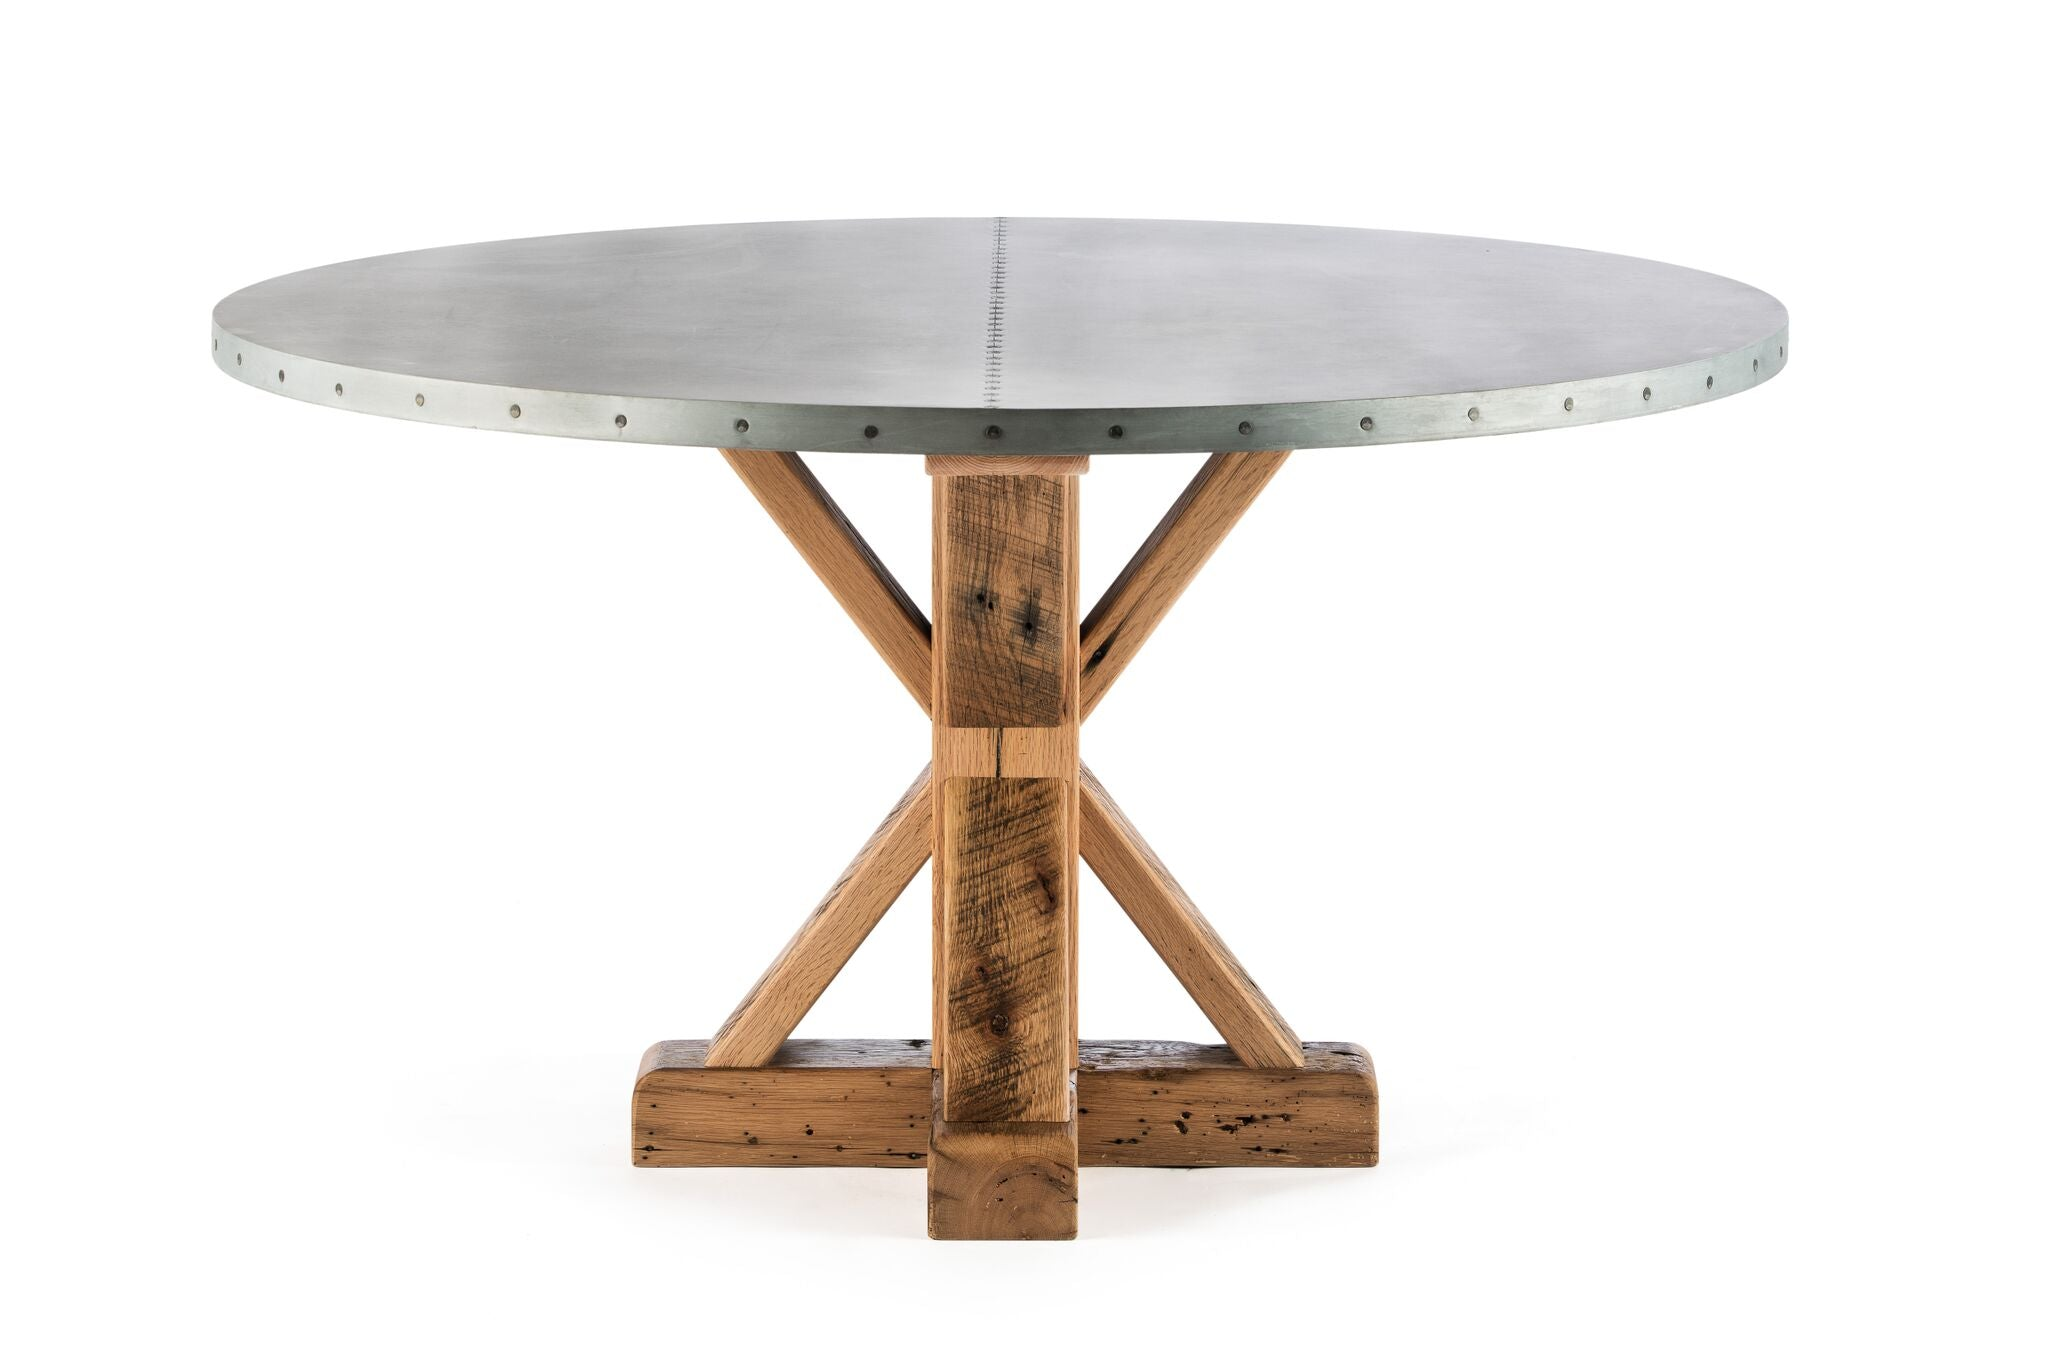 Zinc Round Tables | French Trestle Table | CLASSIC | Natural Black Walnut | CUSTOM SIZE D 72 H 30 | 2.5"